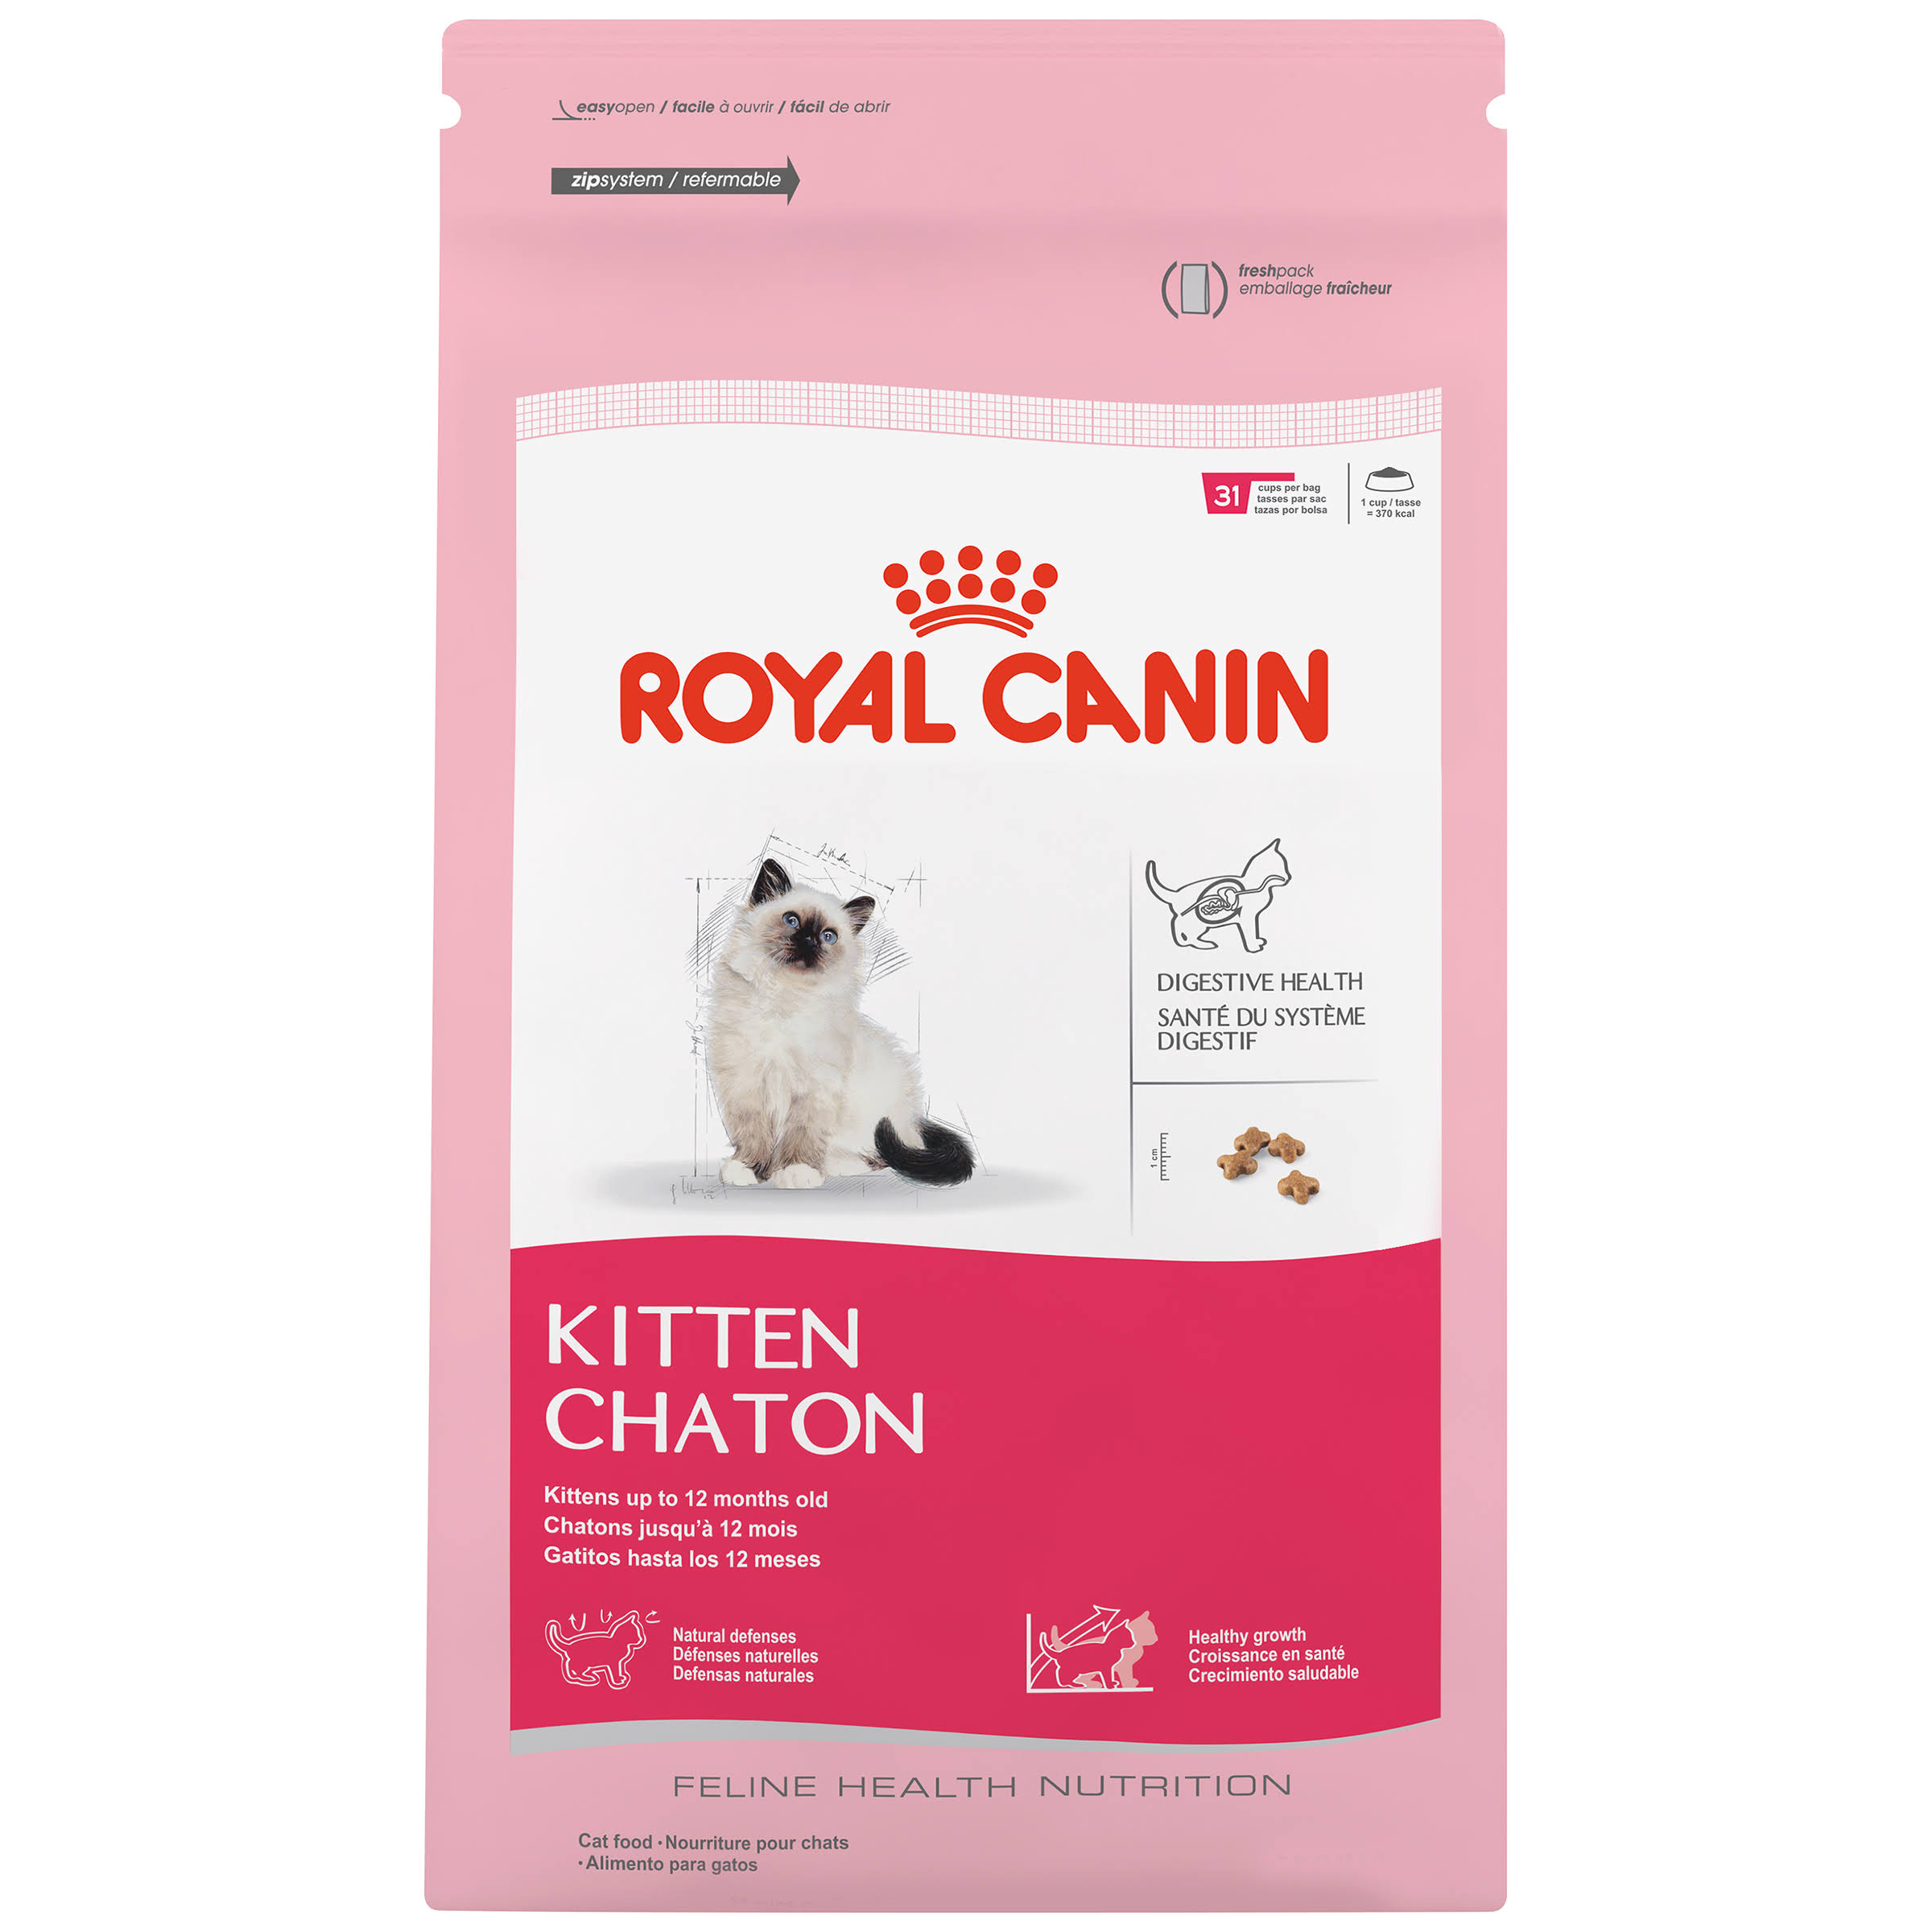 Royal Canin Kitten Feline Health Nutrition Dry Cat Food - 3.5lbs